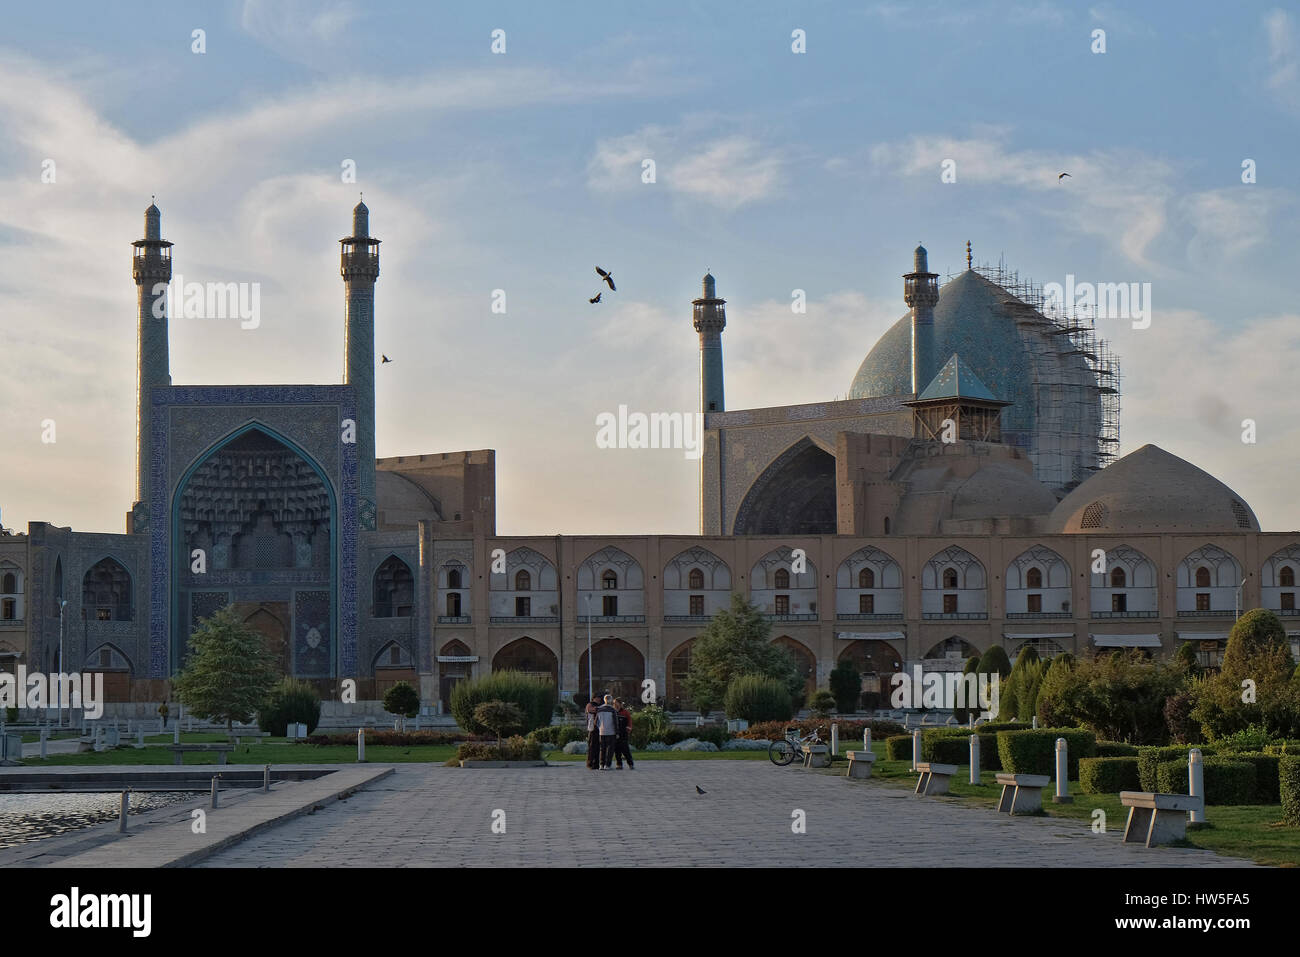 Details of Sheikh Lotfollah Mosque in Isfahan, Iran, Iran's World Heritage - Stock Image